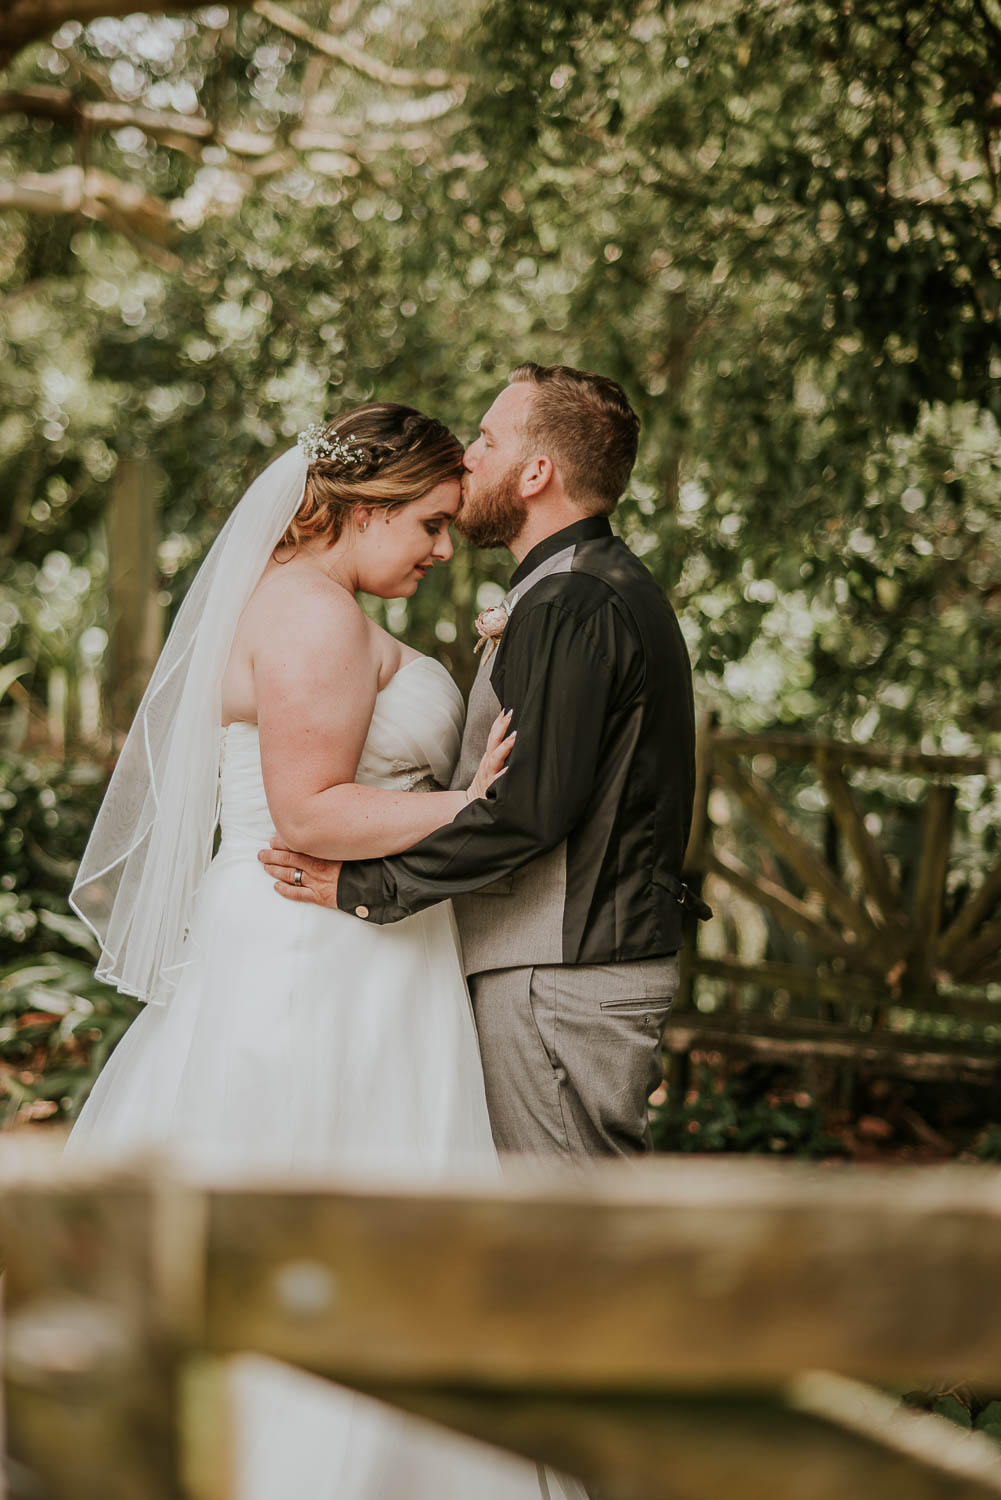 David-Alysha-Farm-Rustic-Auckland-Wedding-51